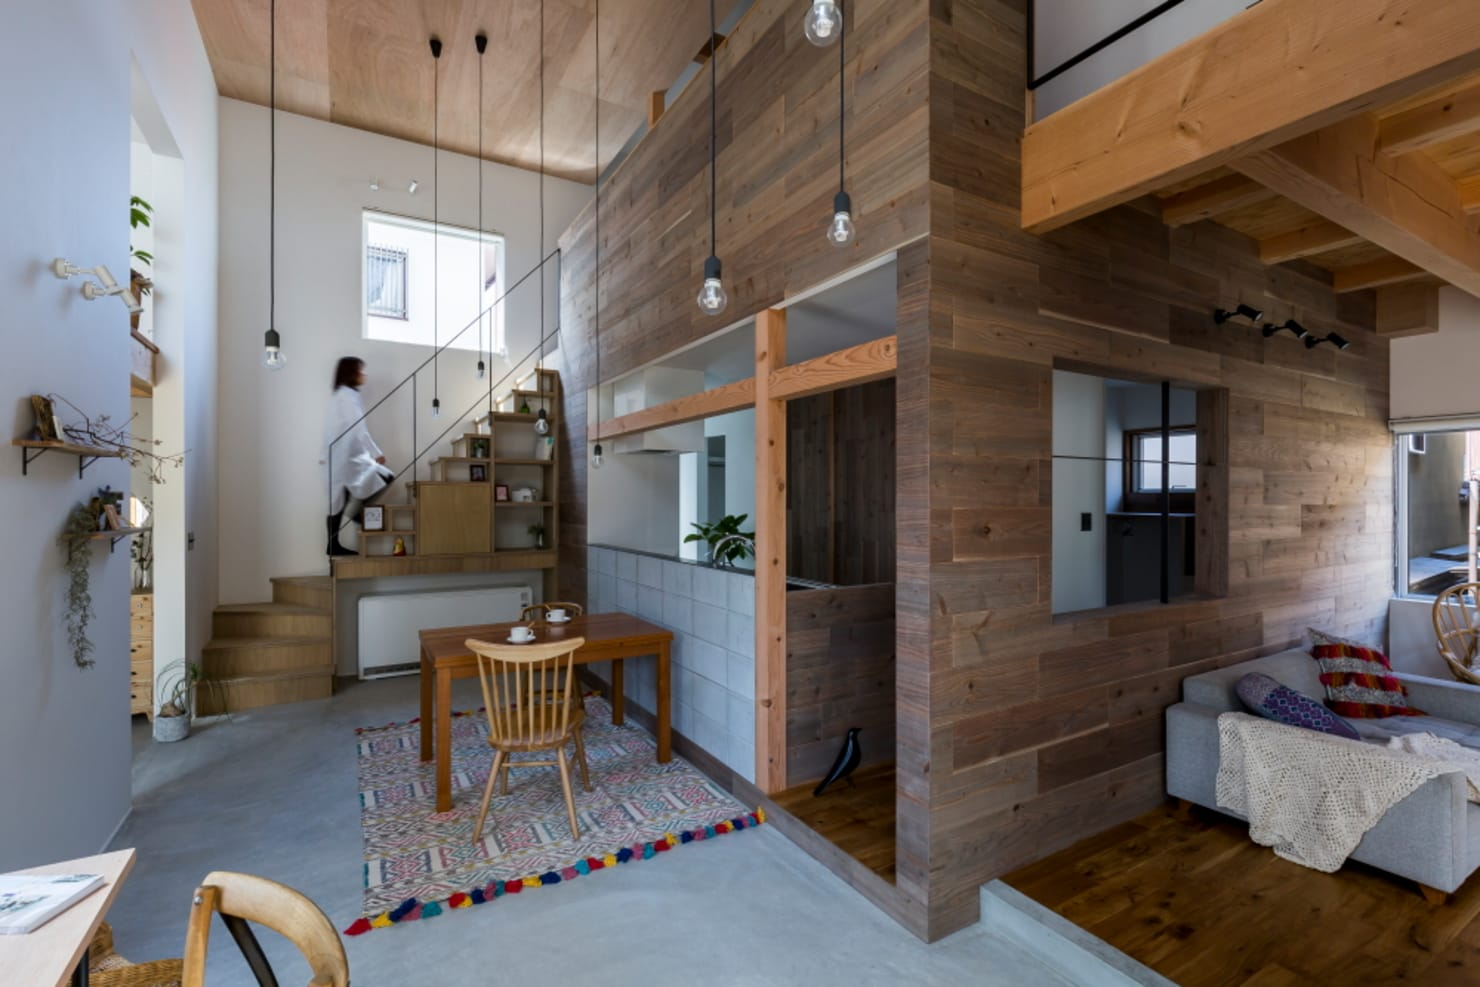 3 alternative houses to make you want to break out of the mold!